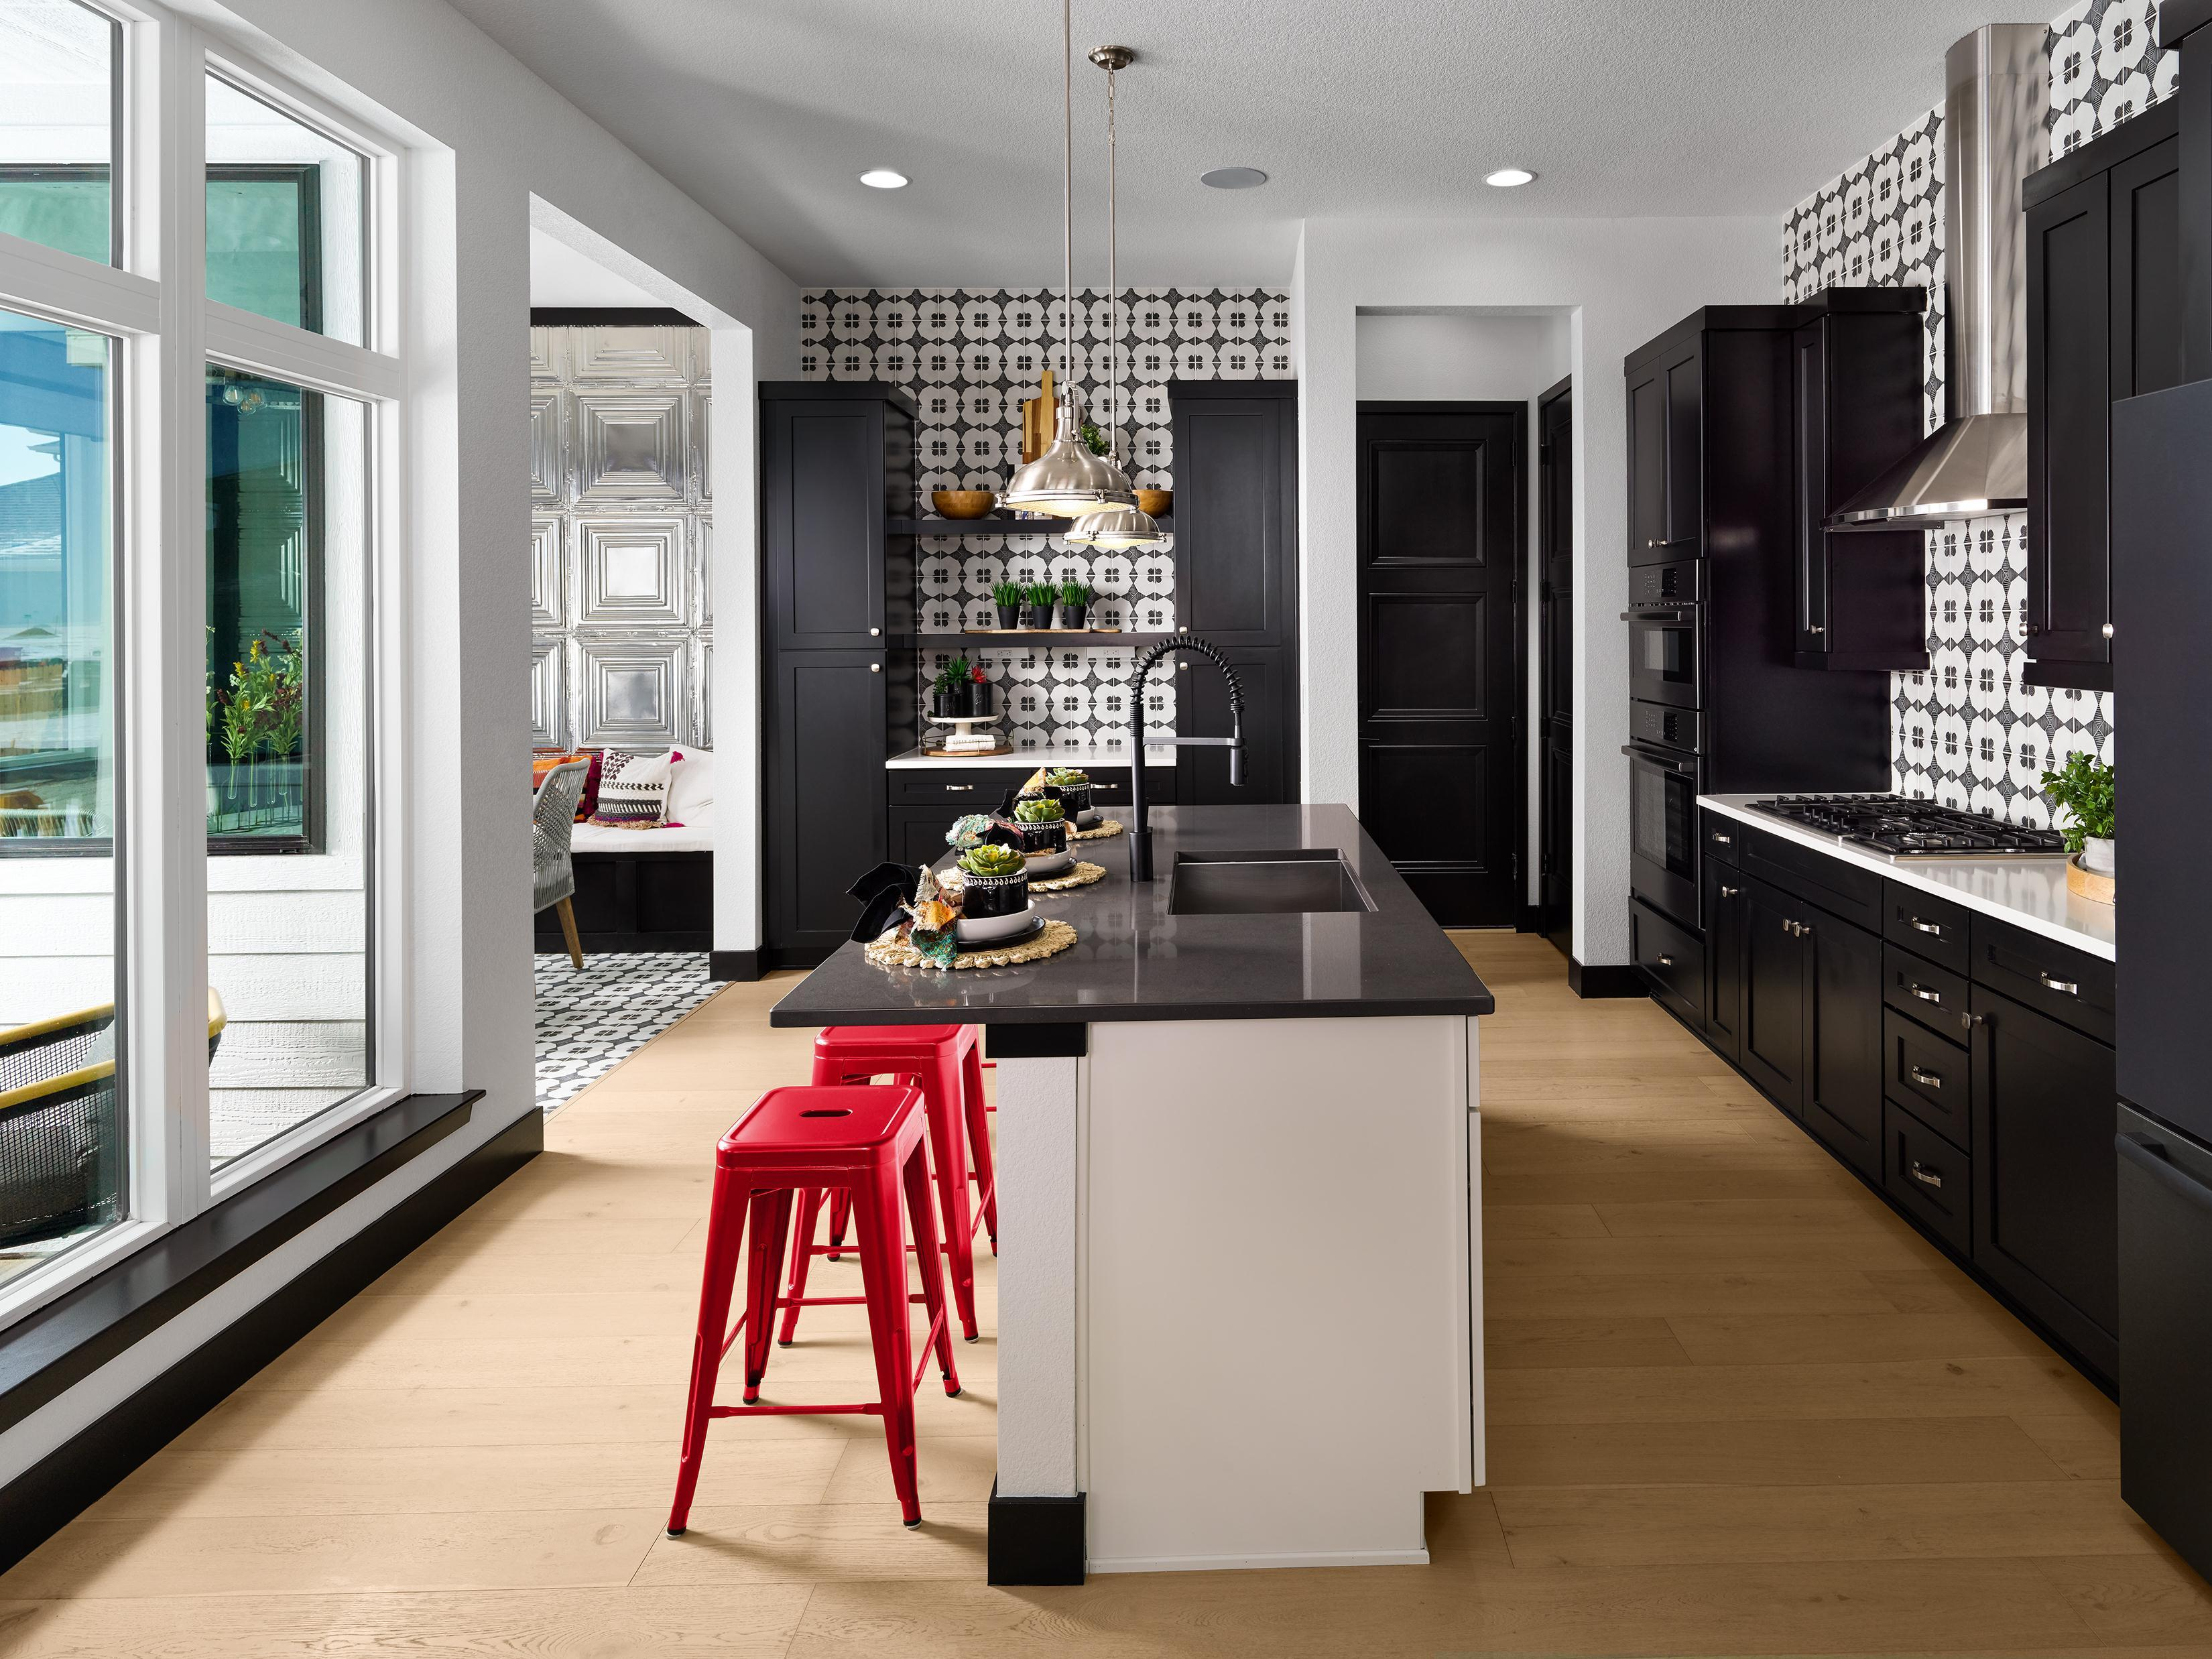 Kitchen featured in the Transcend  By Epic Homes in Denver, CO